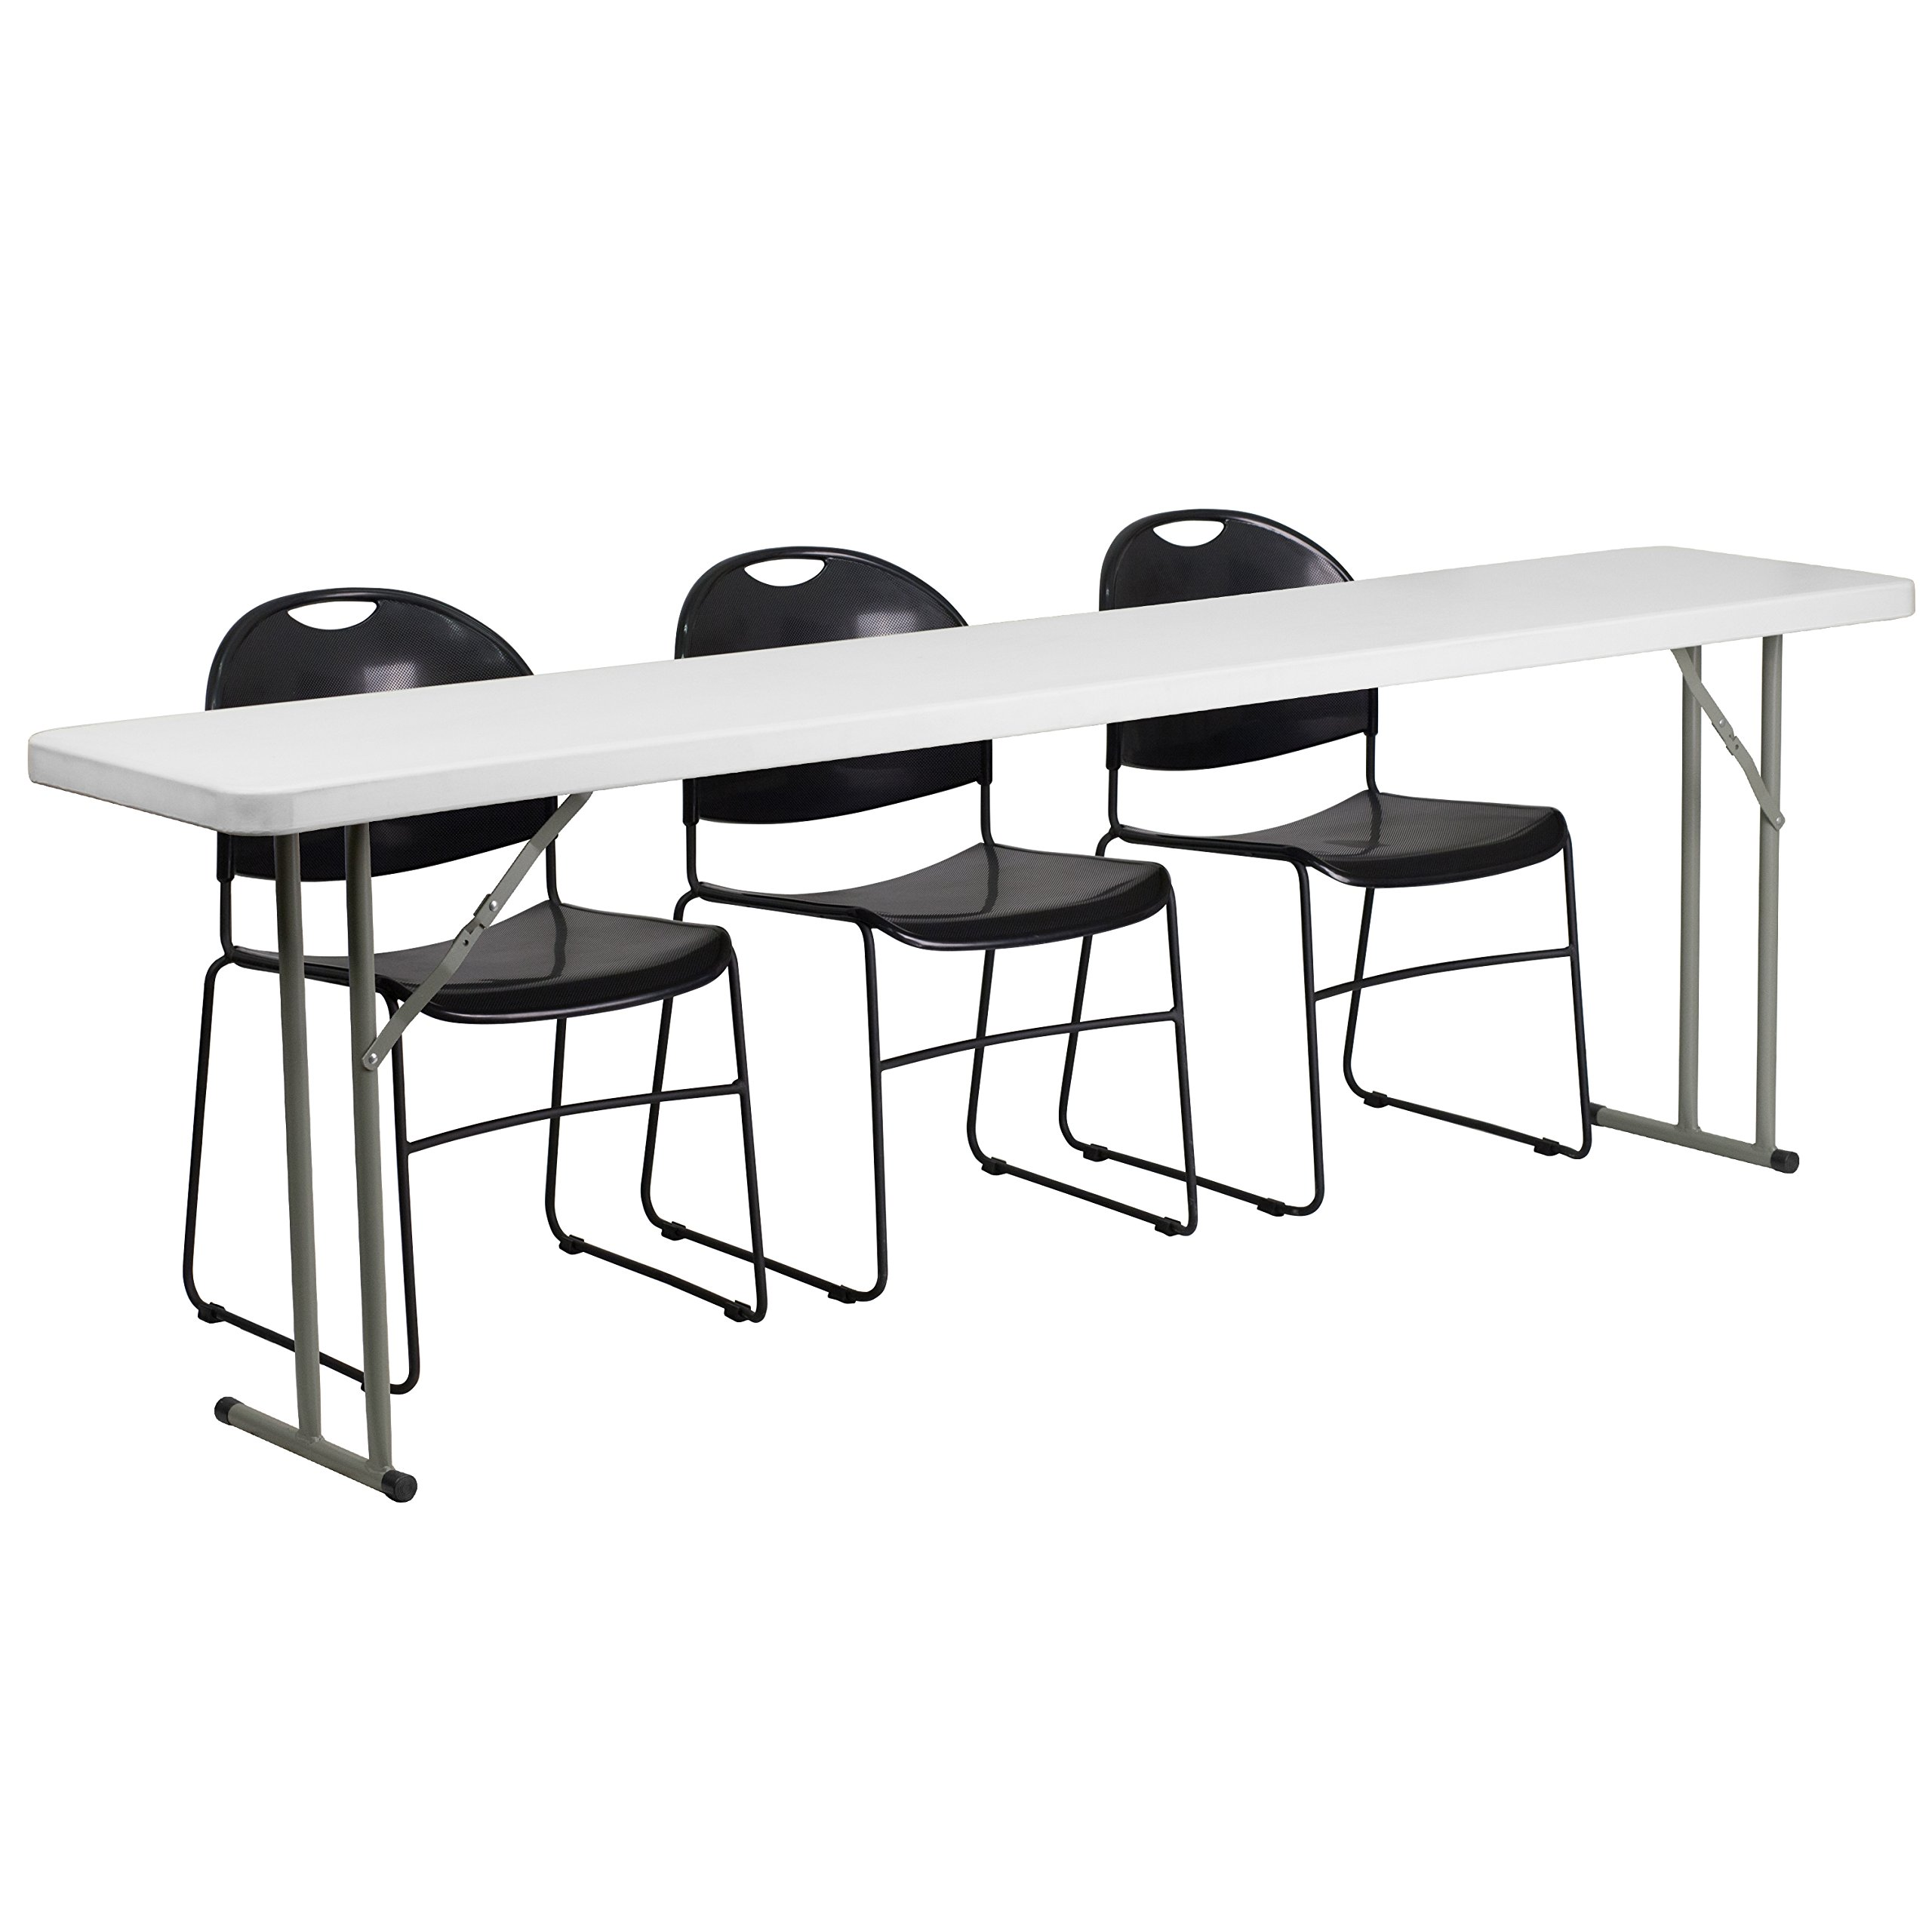 Flash Furniture 18'' x 96'' Plastic Folding Training Table Set with 3 Black Plastic Stack Chairs